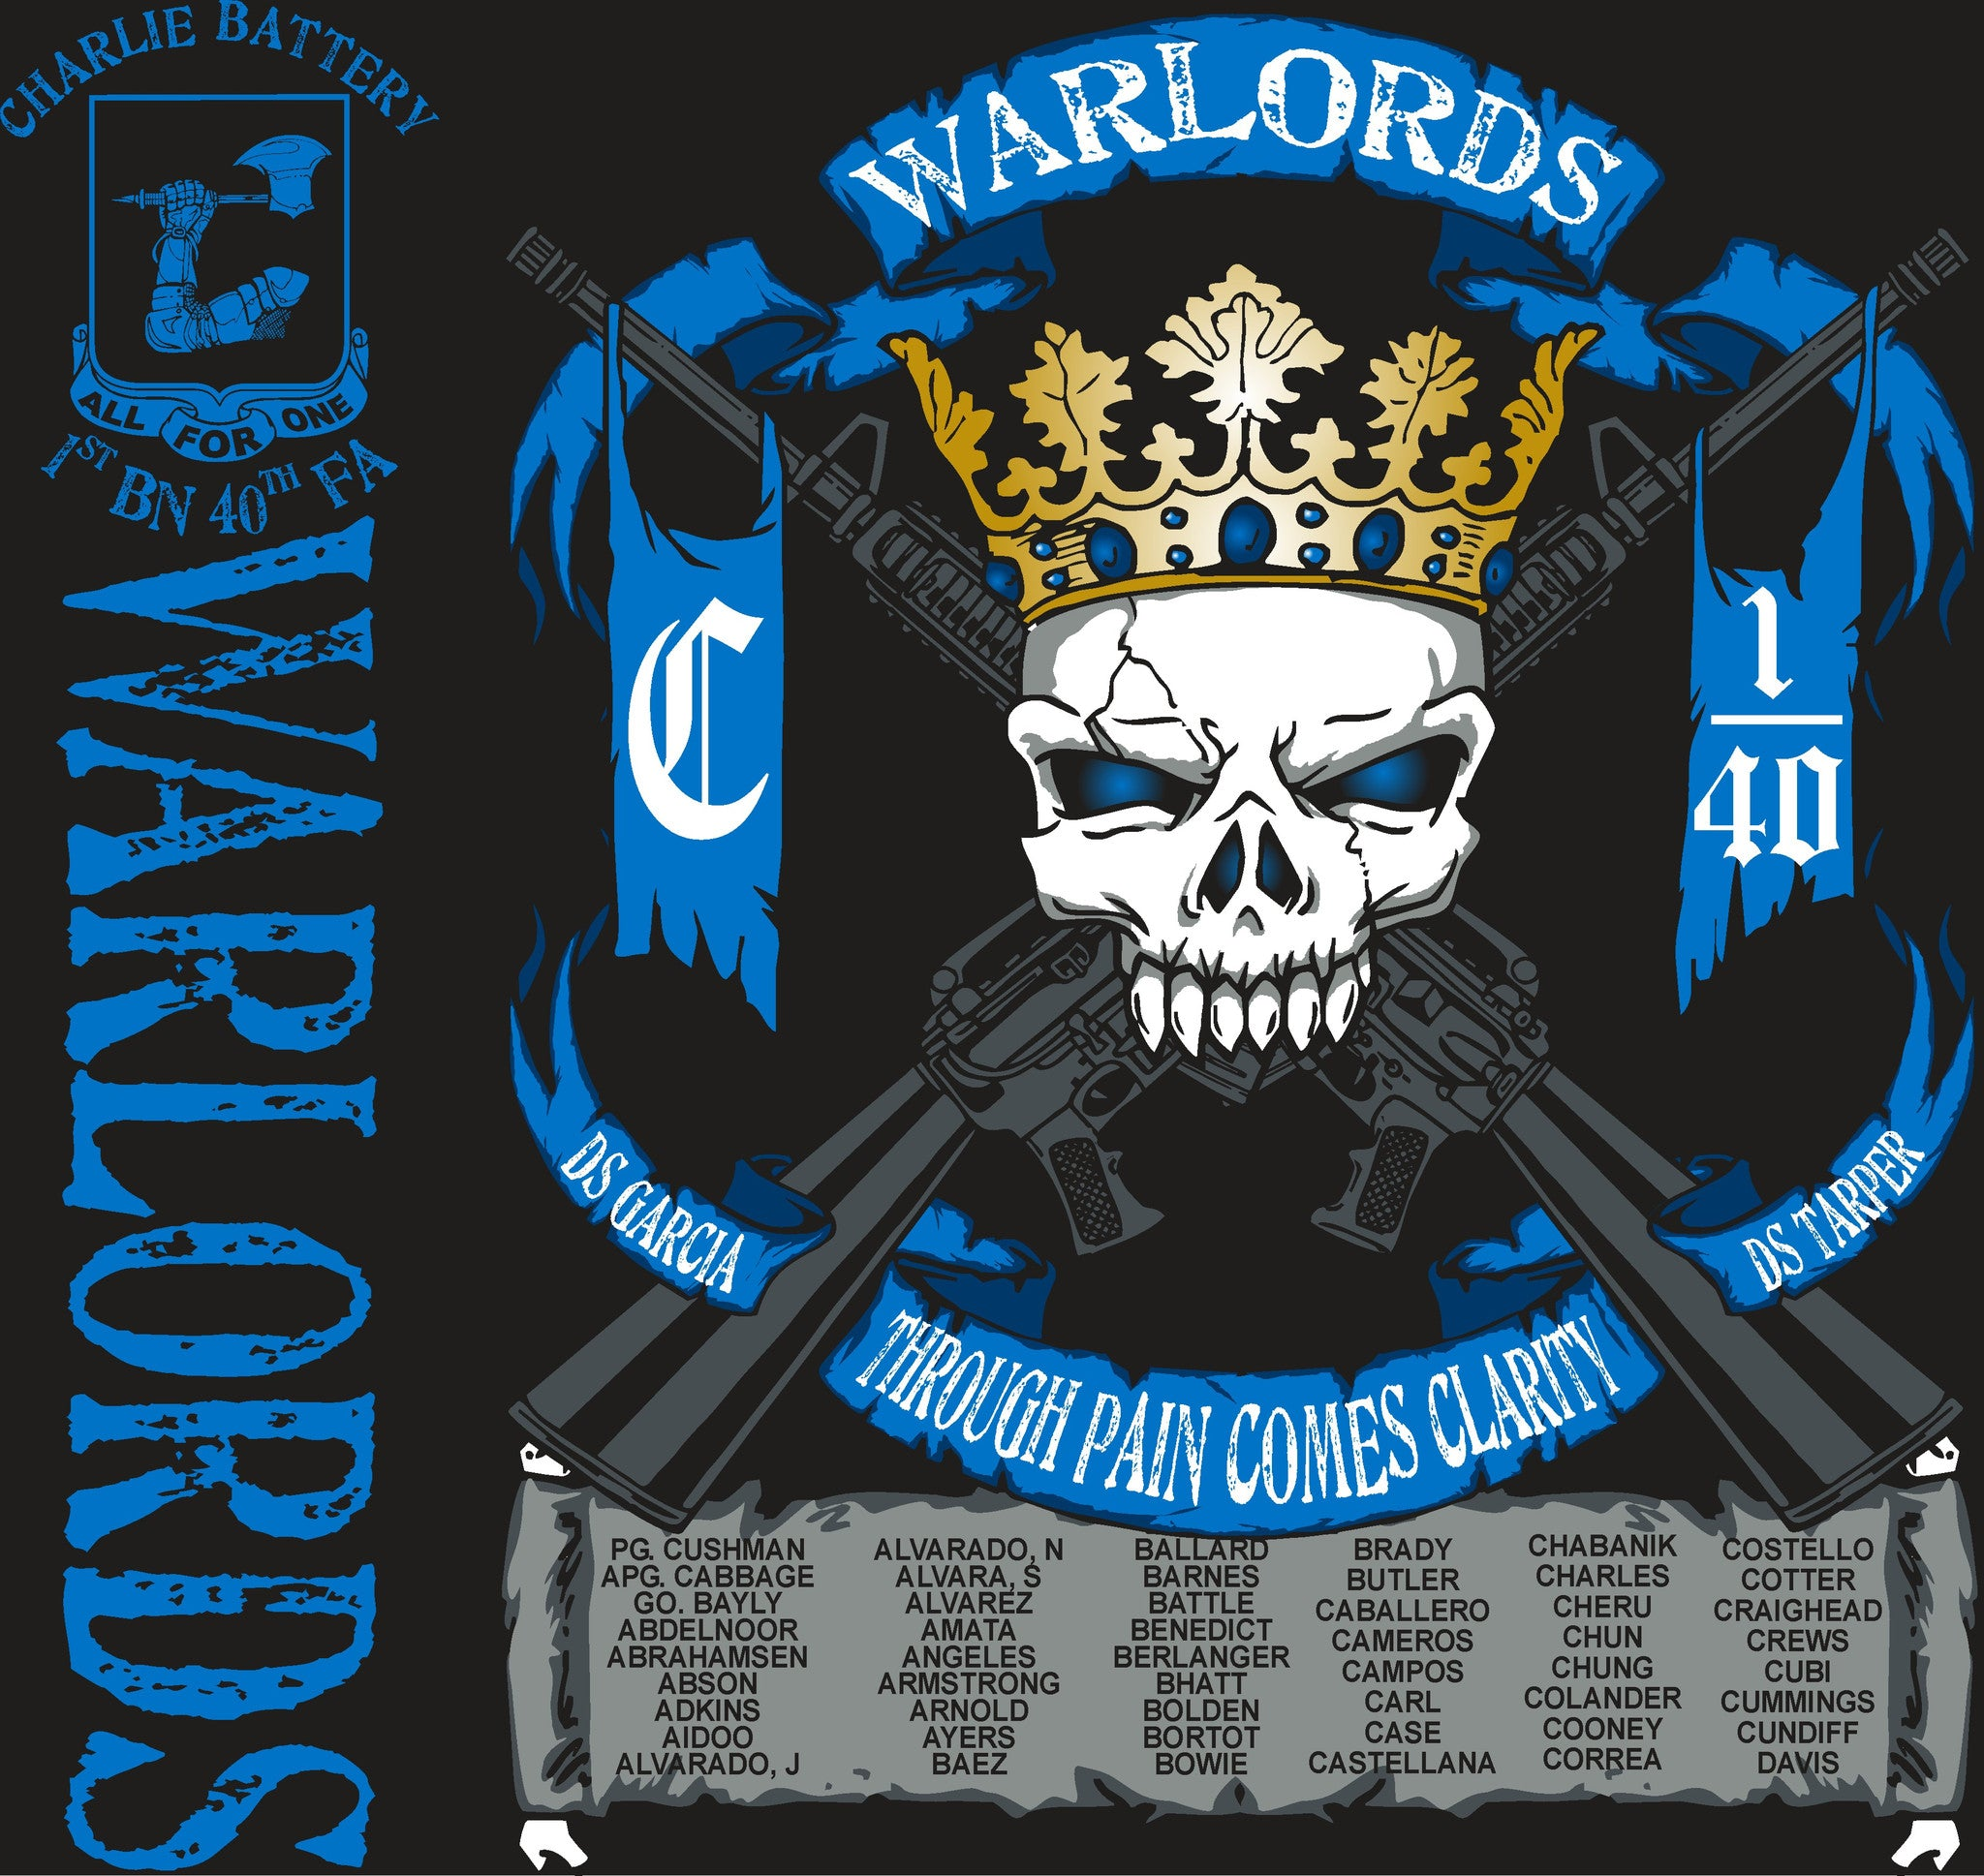 Platoon Shirts CHARLIE 1st 40th WARLORDS APR 2015